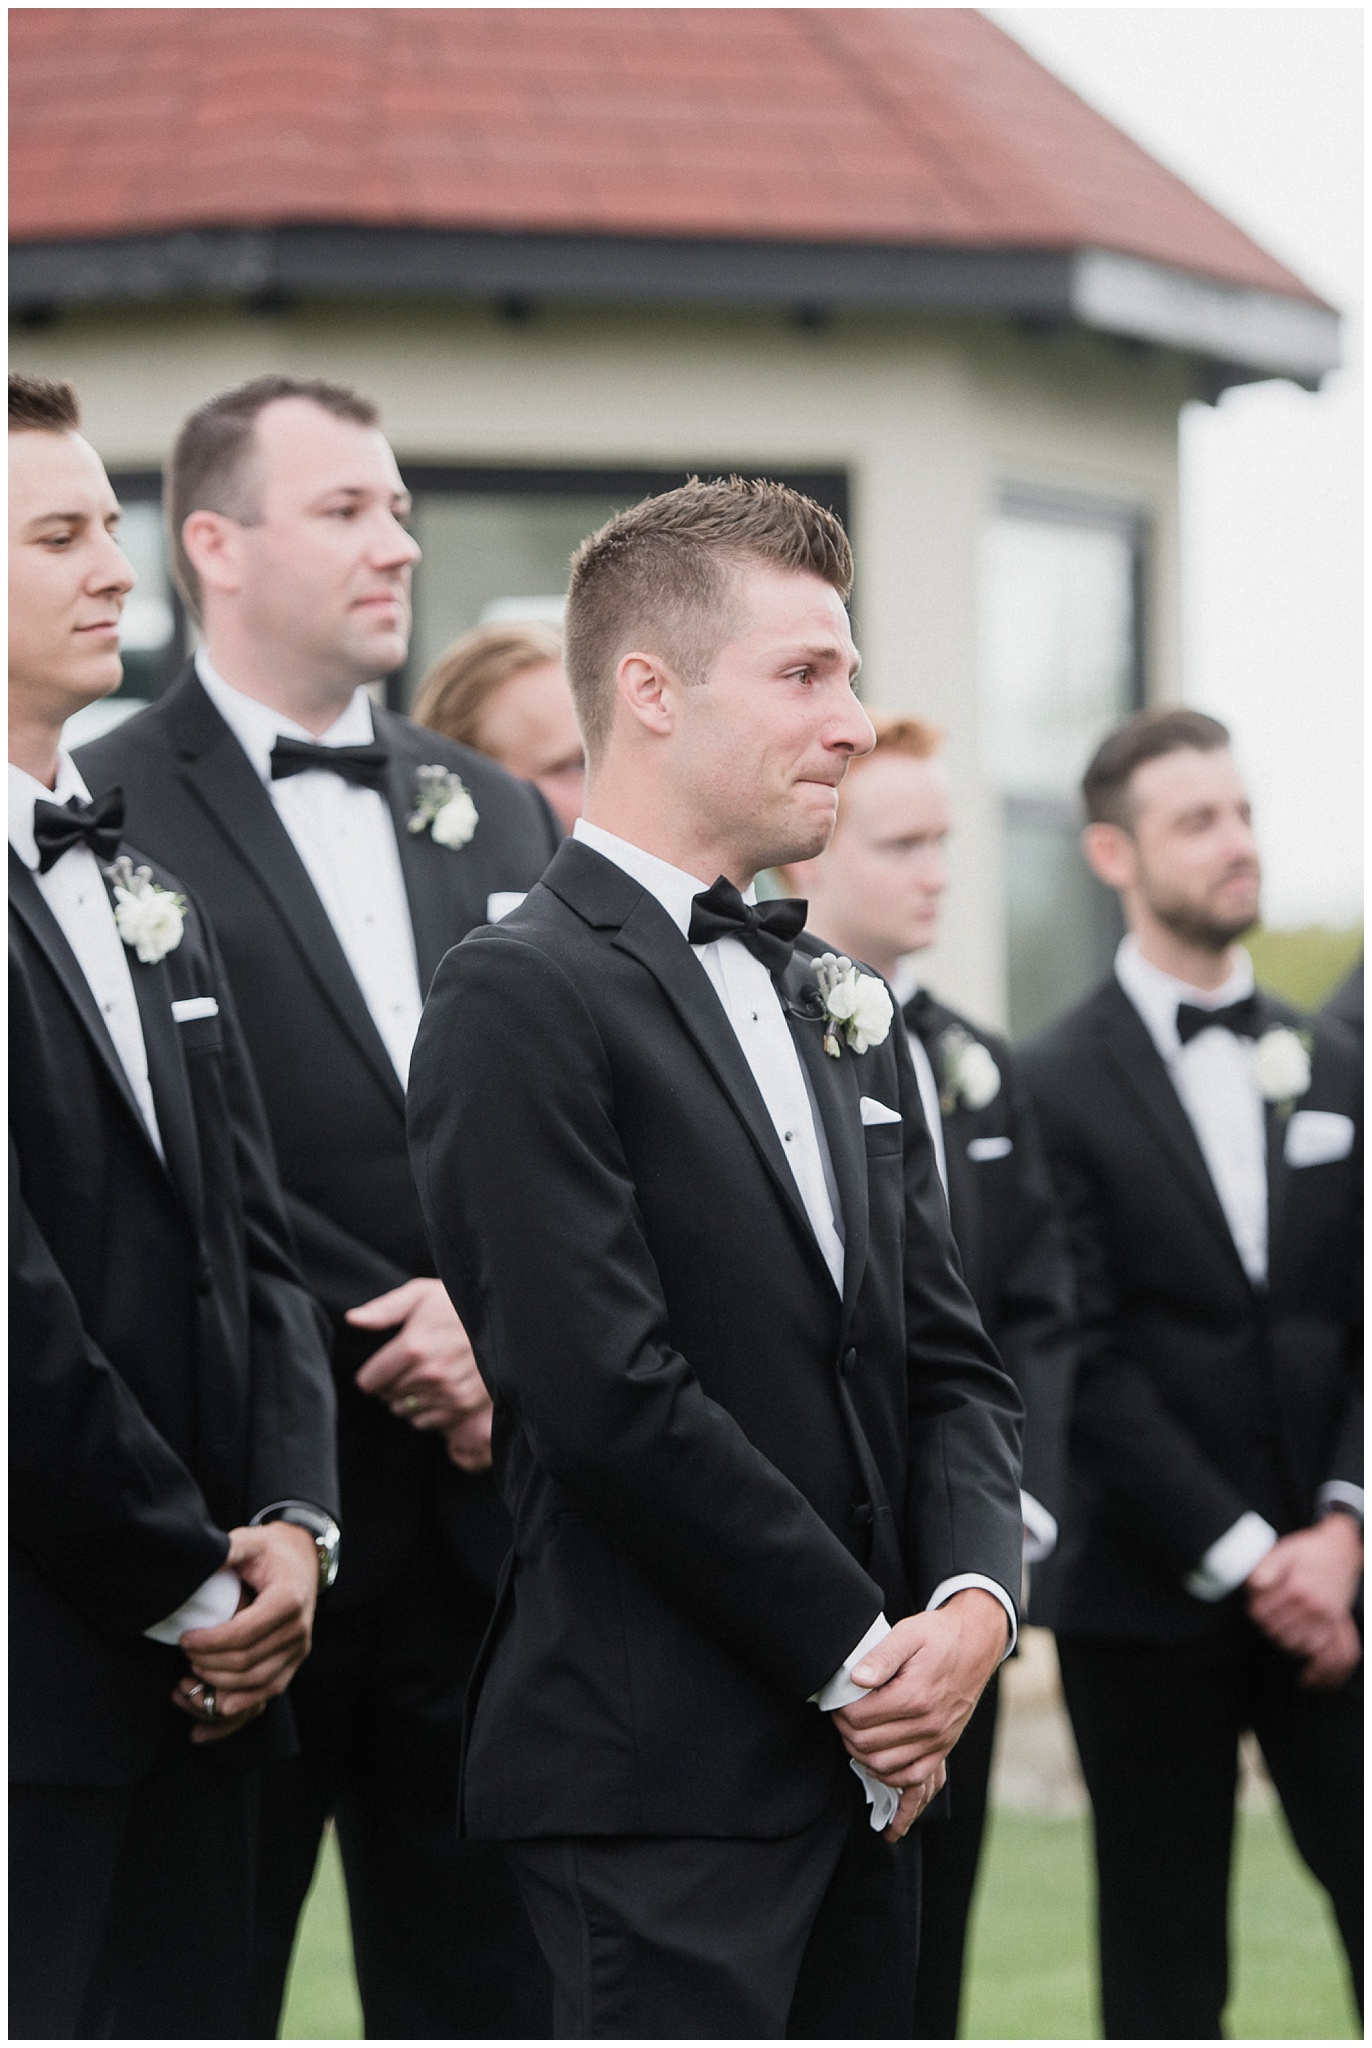 Best groom reaction ever! So sweet. Photo by Jenn Kavanagh Photography